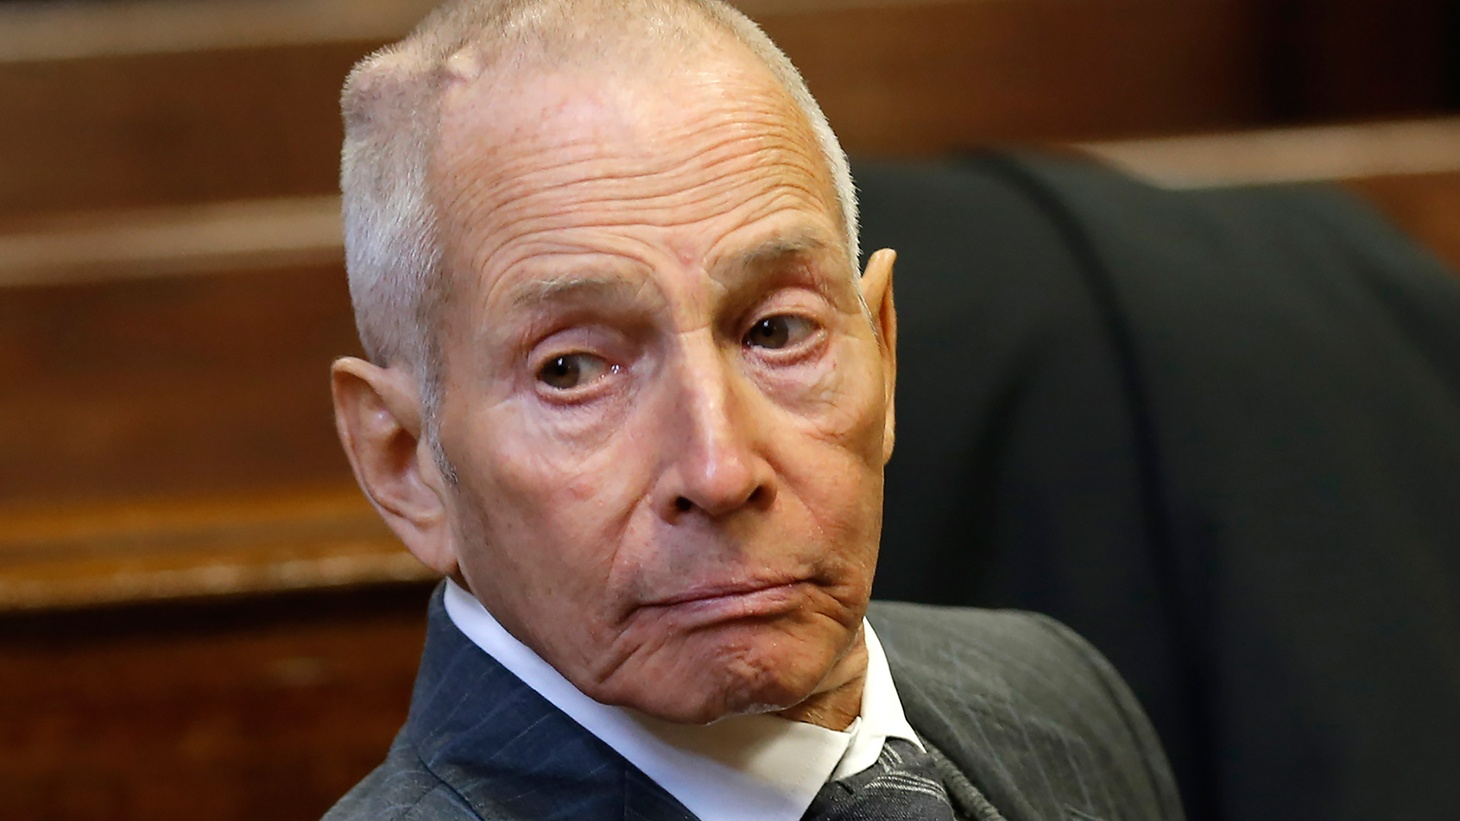 Did Robert Durst's shocking turn on HBO's The Jinx amount to a confession? Also, what do we know about when the filmmakers started to cooperate with law enforcement, and what are the moral considerations for investigative journalists when reporting uncovers new evidence?